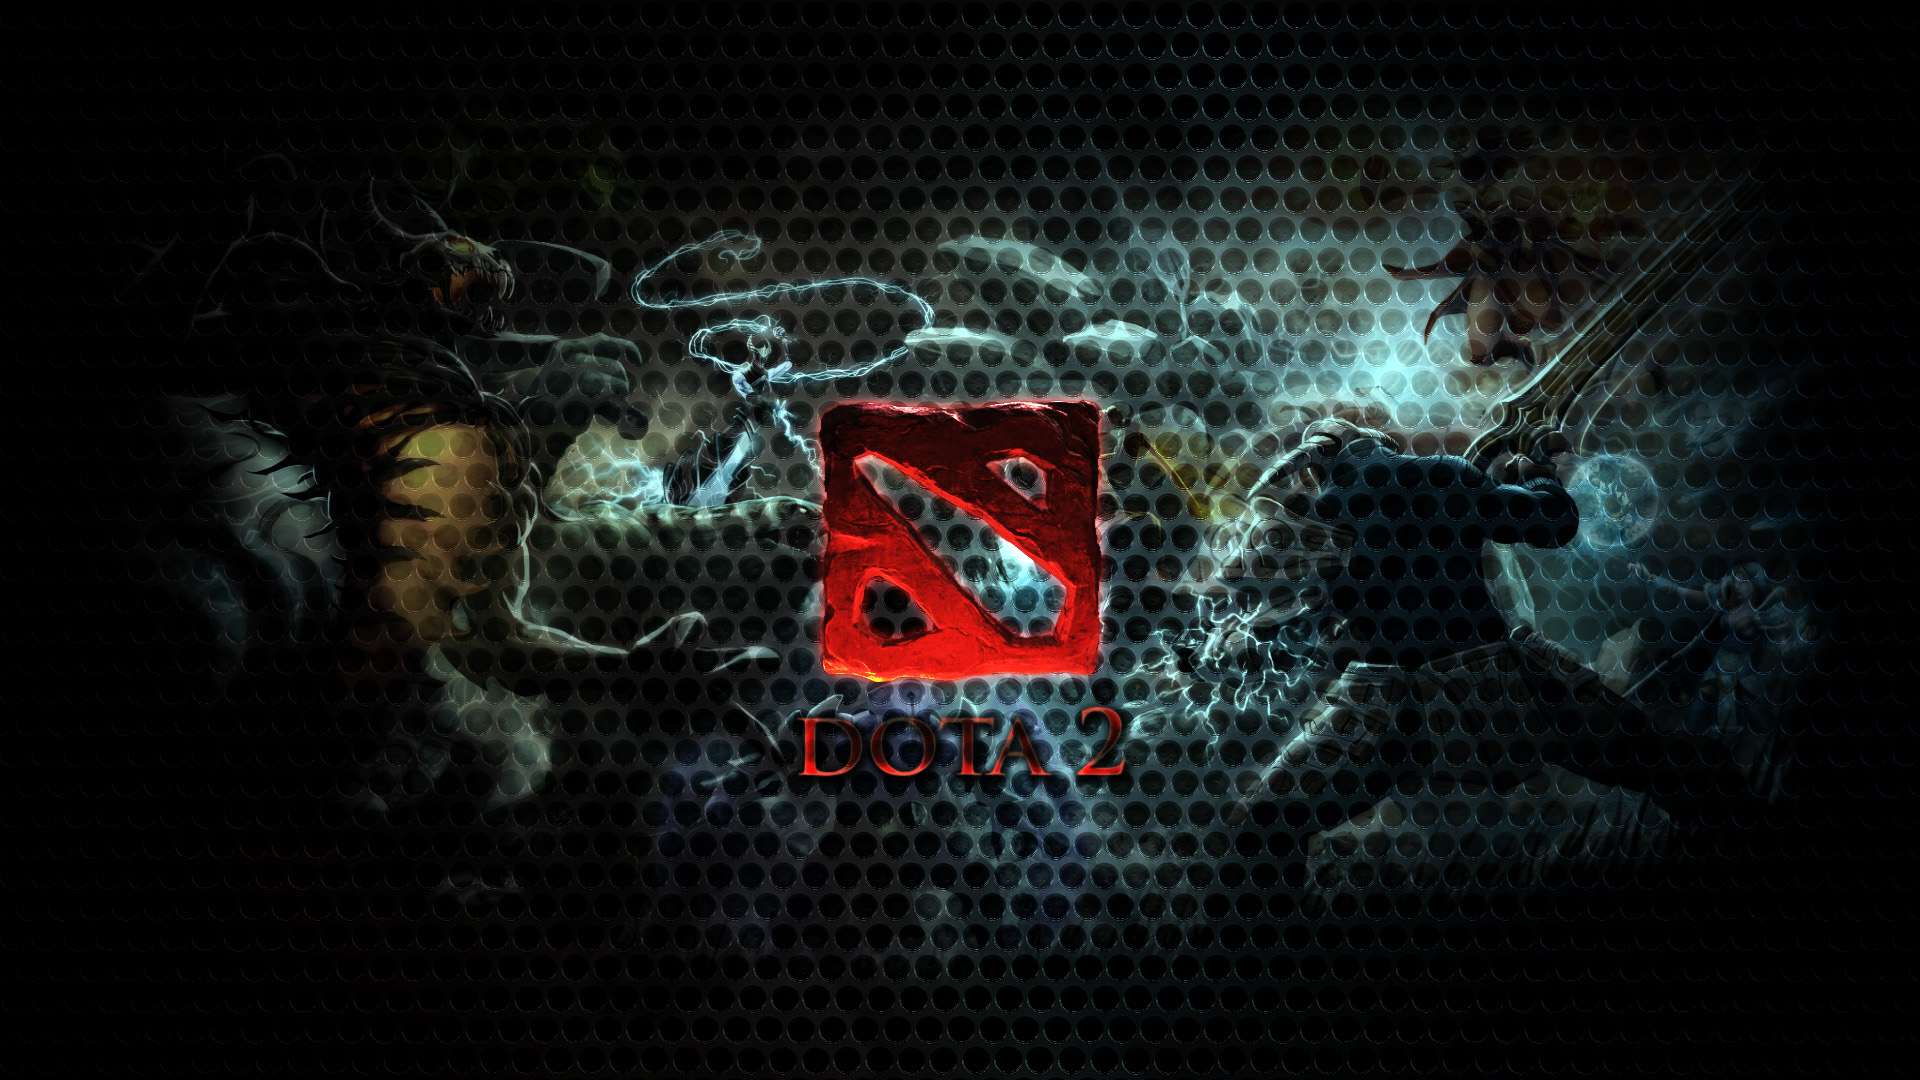 Dota 2 Logo Wallpapers HD Free Download Wallpapers Dota 2 Private Collection Background Image